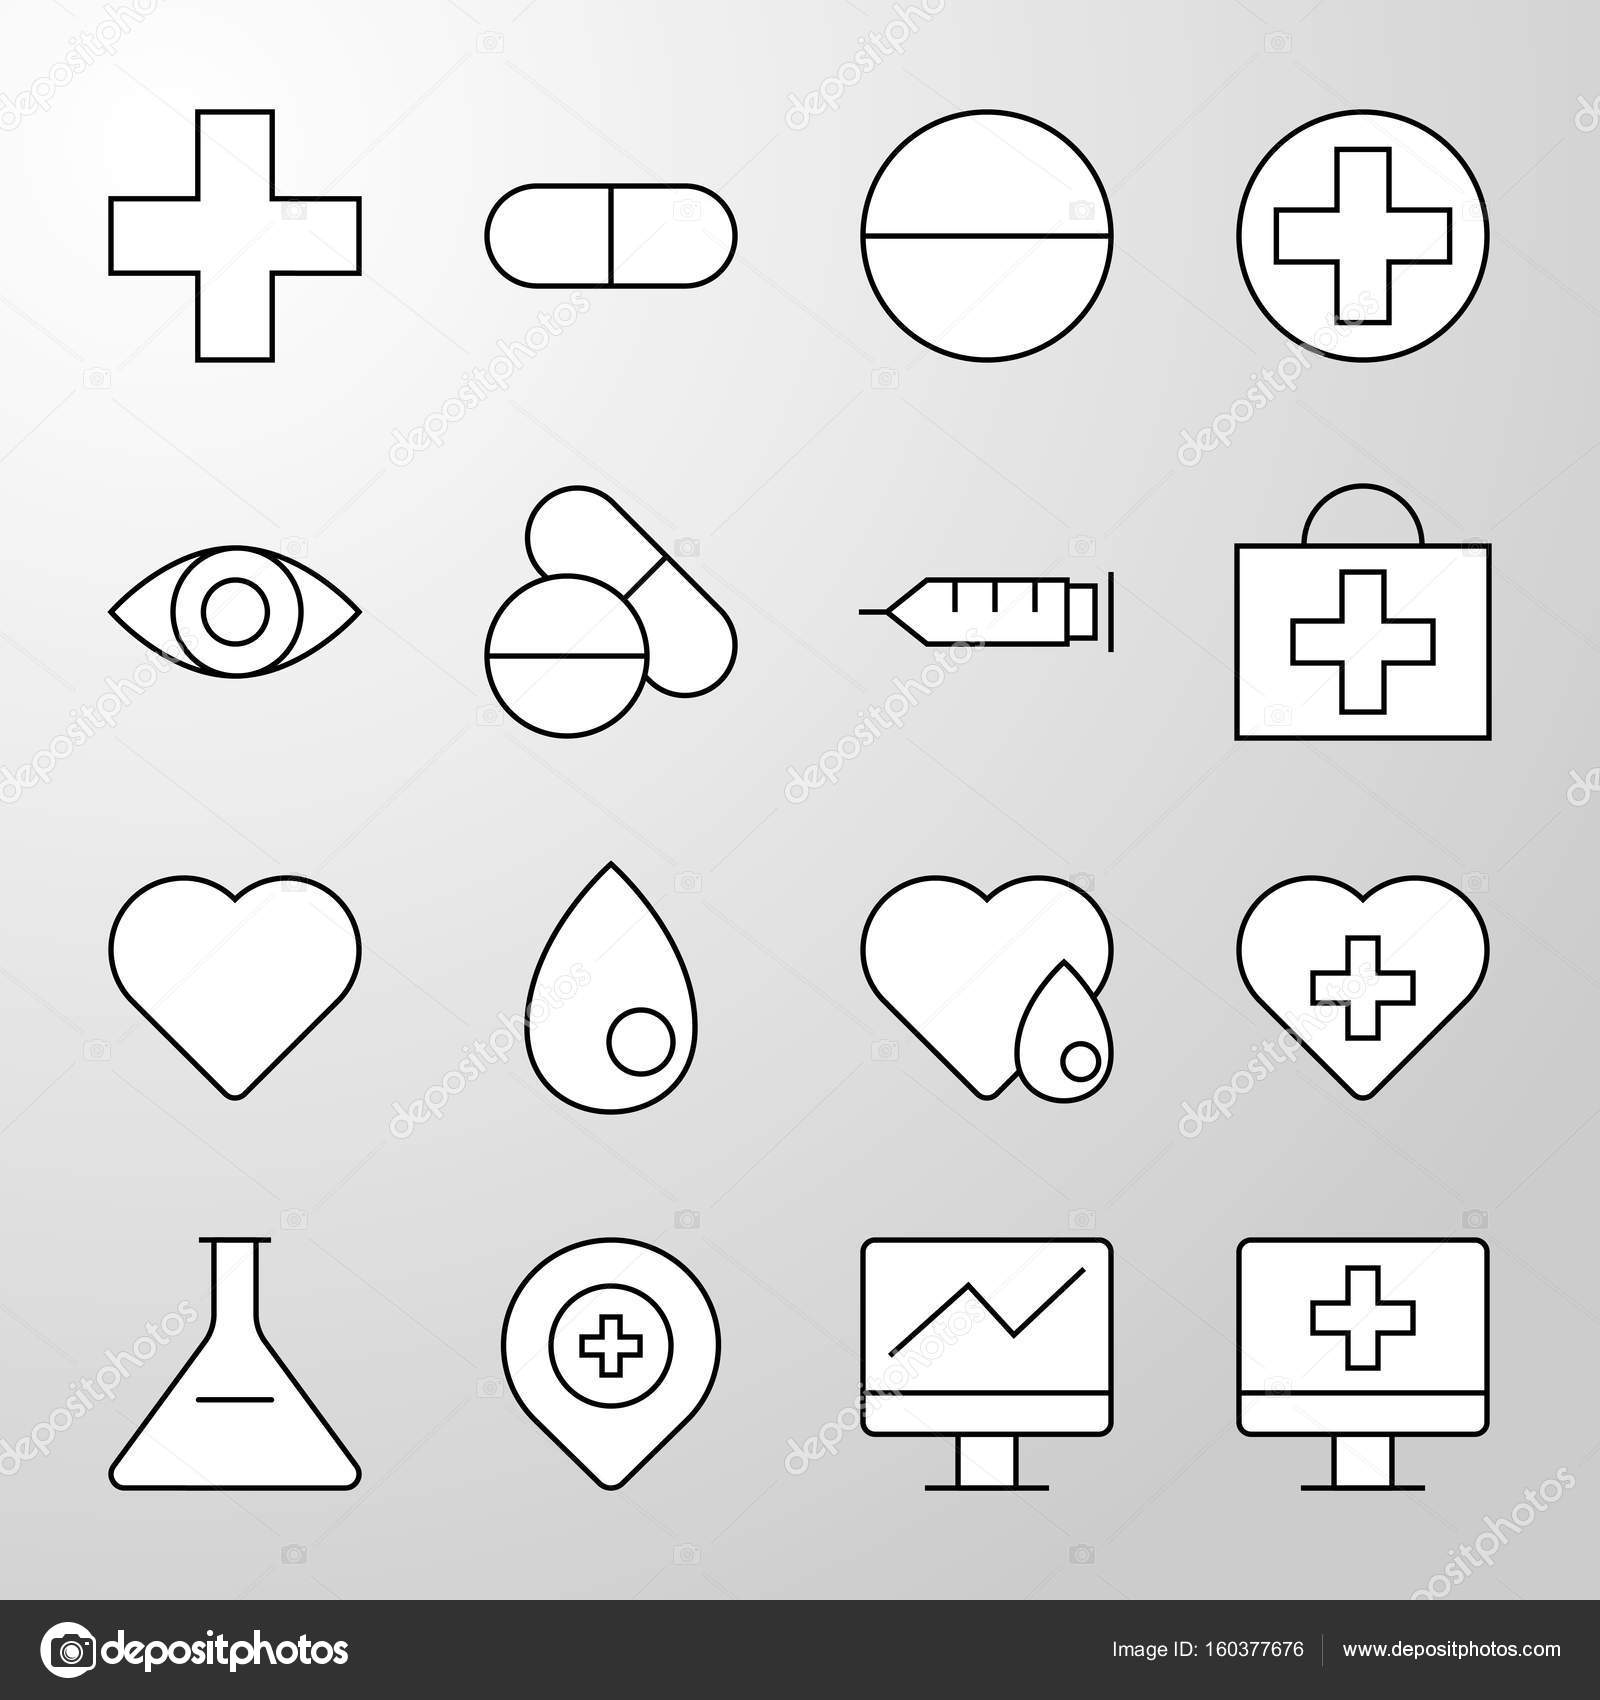 Medical hospital health thin line vector icon stock vector set of simple medical hospital healthcare professional and medical equipment thin line vector icon editable stroke 64x64 pixel perfect icons biocorpaavc Choice Image